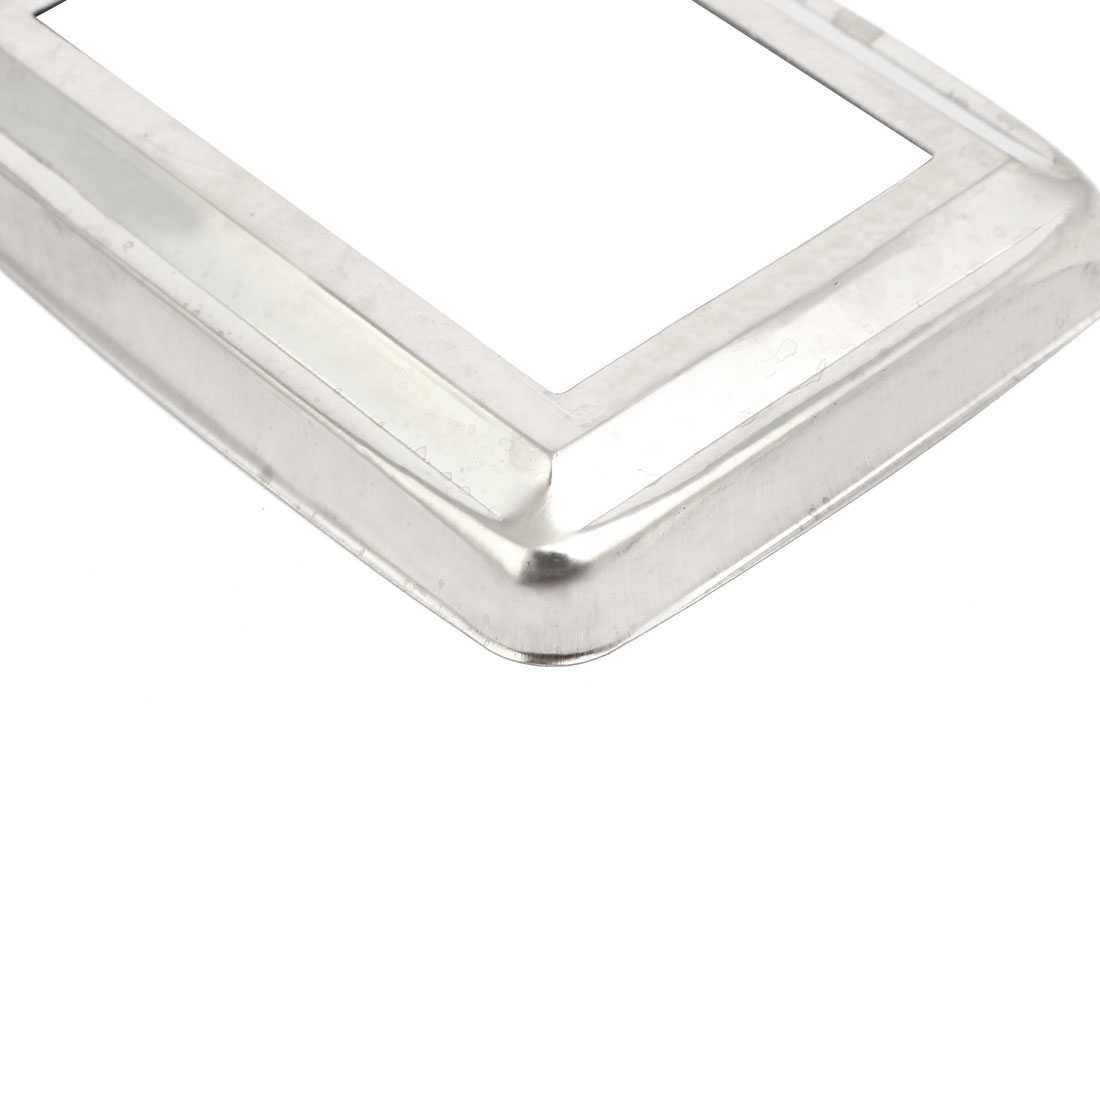 15pcs Ladder Handrail Hand Rail 75mm x 45mm Post Plate Cover 201 Stainless Steel